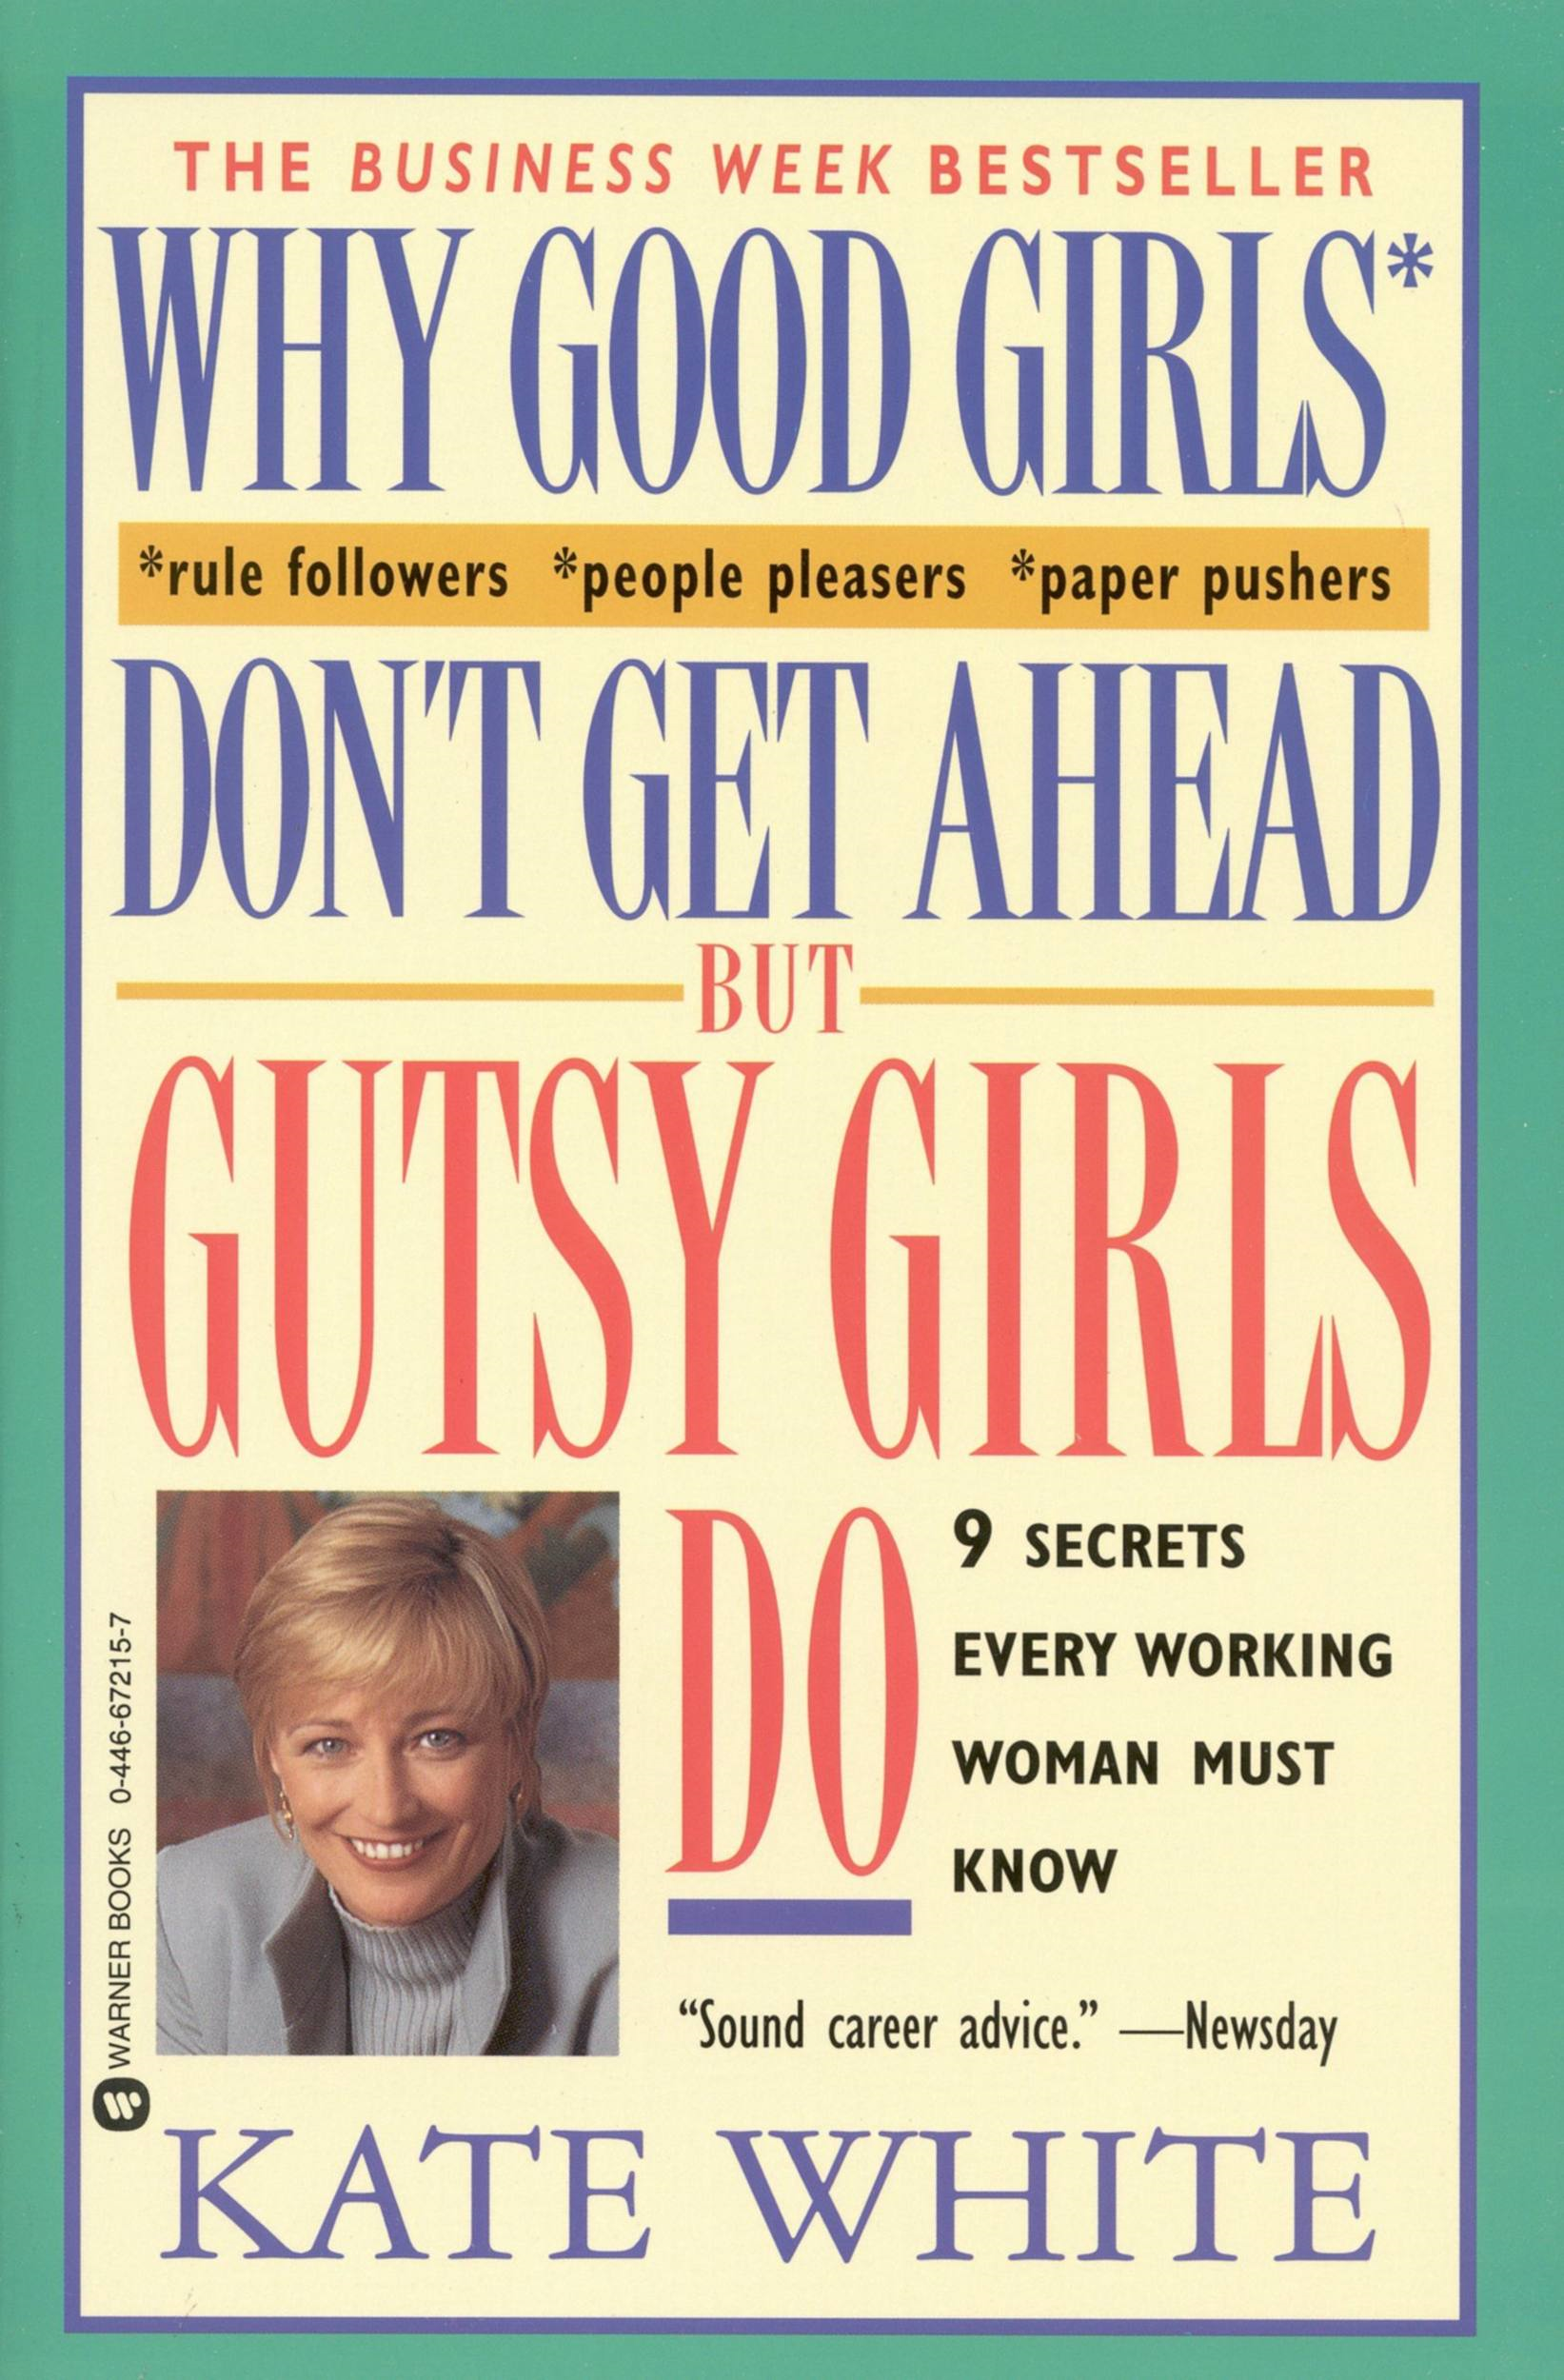 Why Good Girls Don't Get Ahead... But Gutsy Girls Do By: Kate White